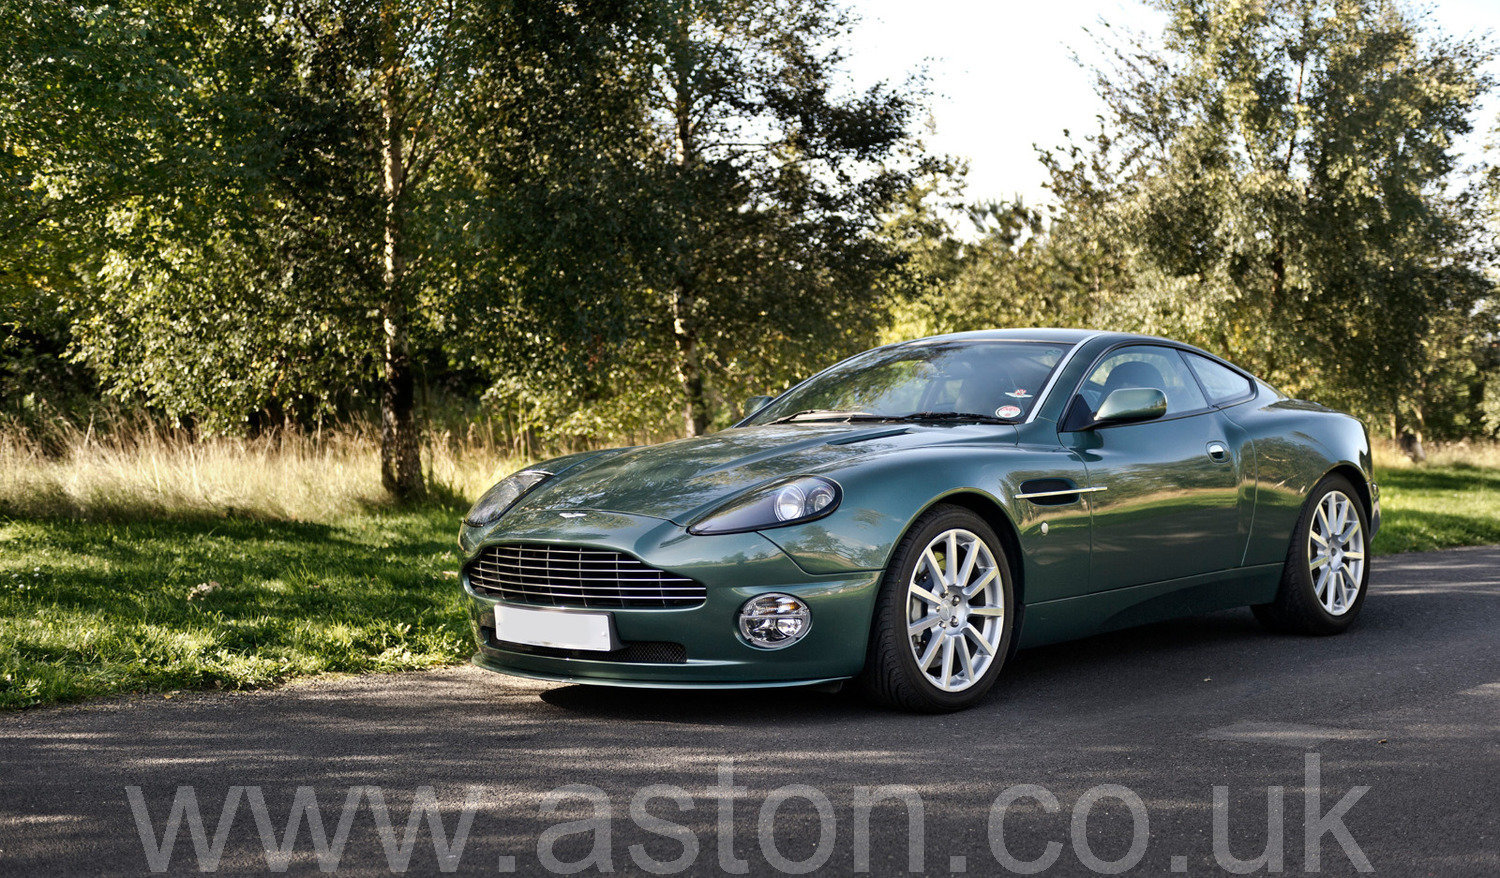 2005 Aston Martin Vanquish S 2+2 For Sale (picture 4 of 6)